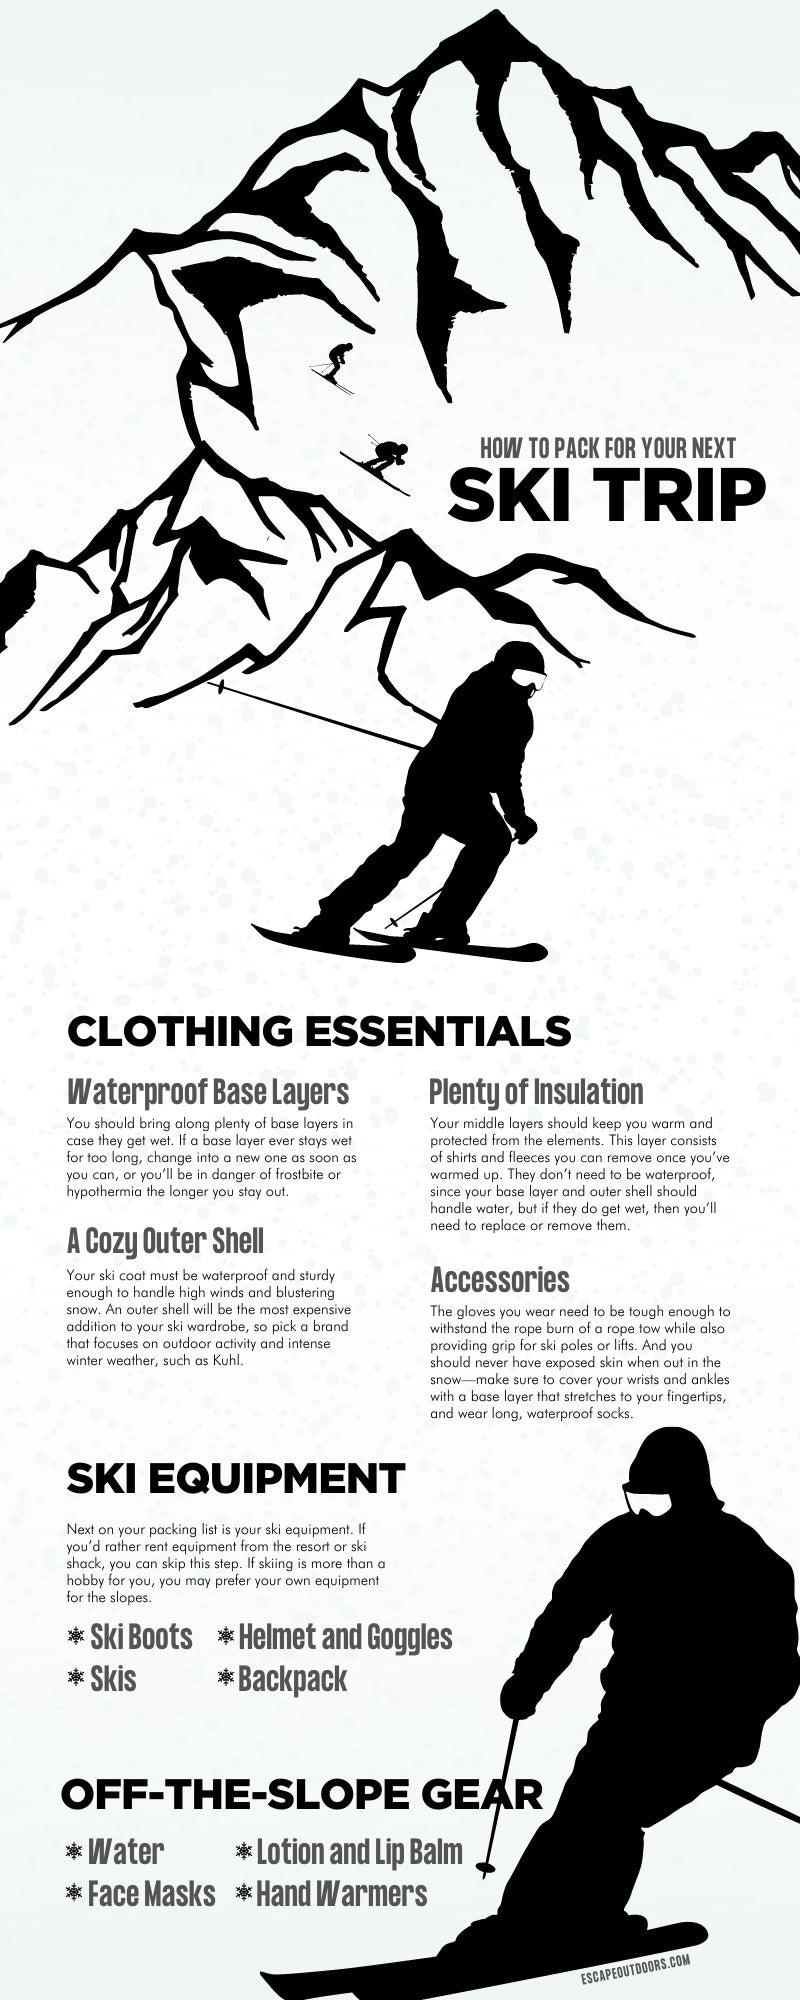 How To Pack for Your Next Ski Trip